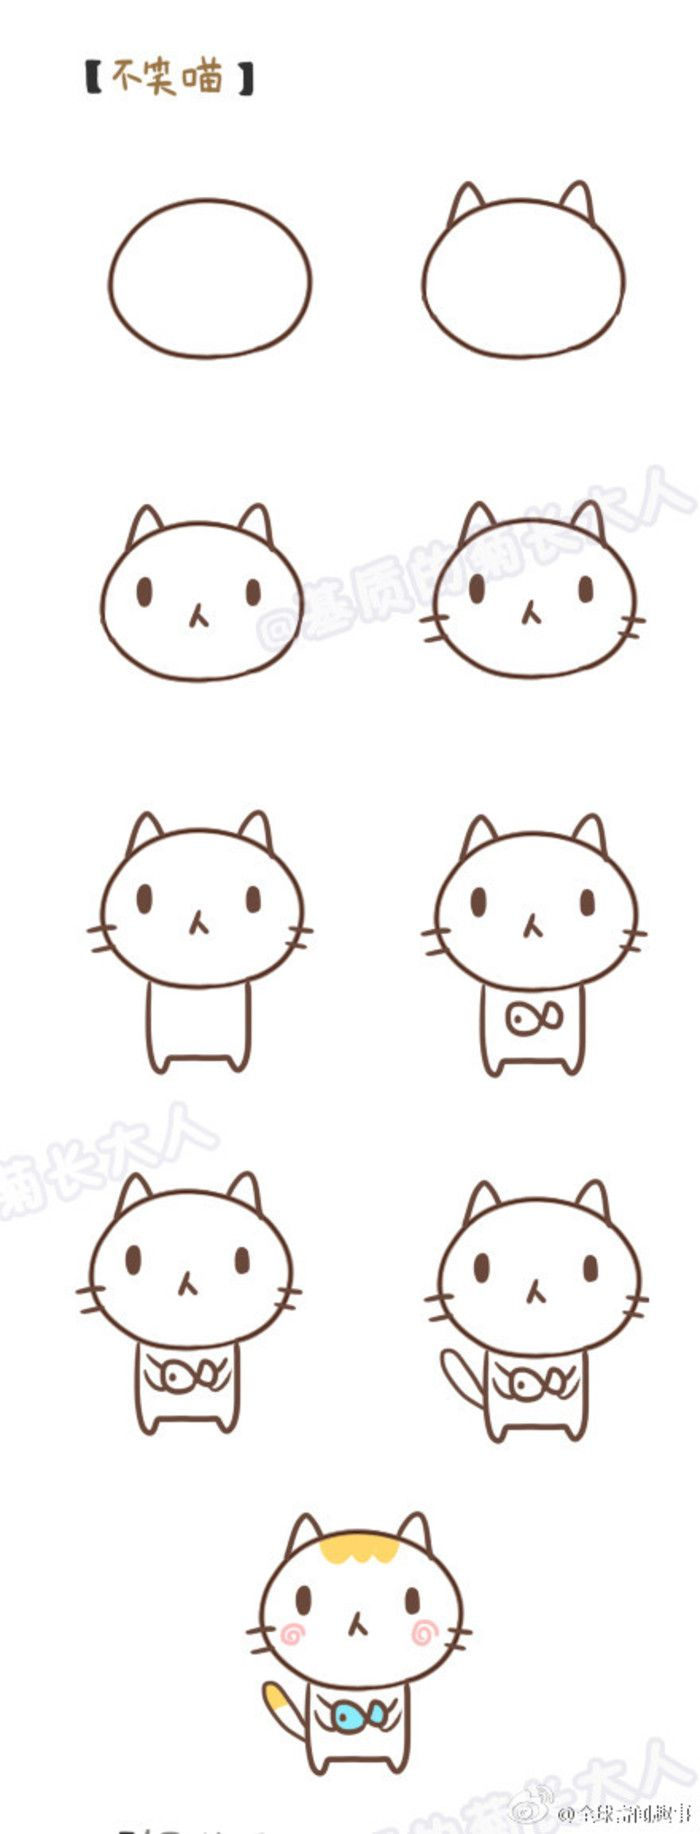 best 25 kawaii cat ideas on pinterest kawaii drawings kawaii